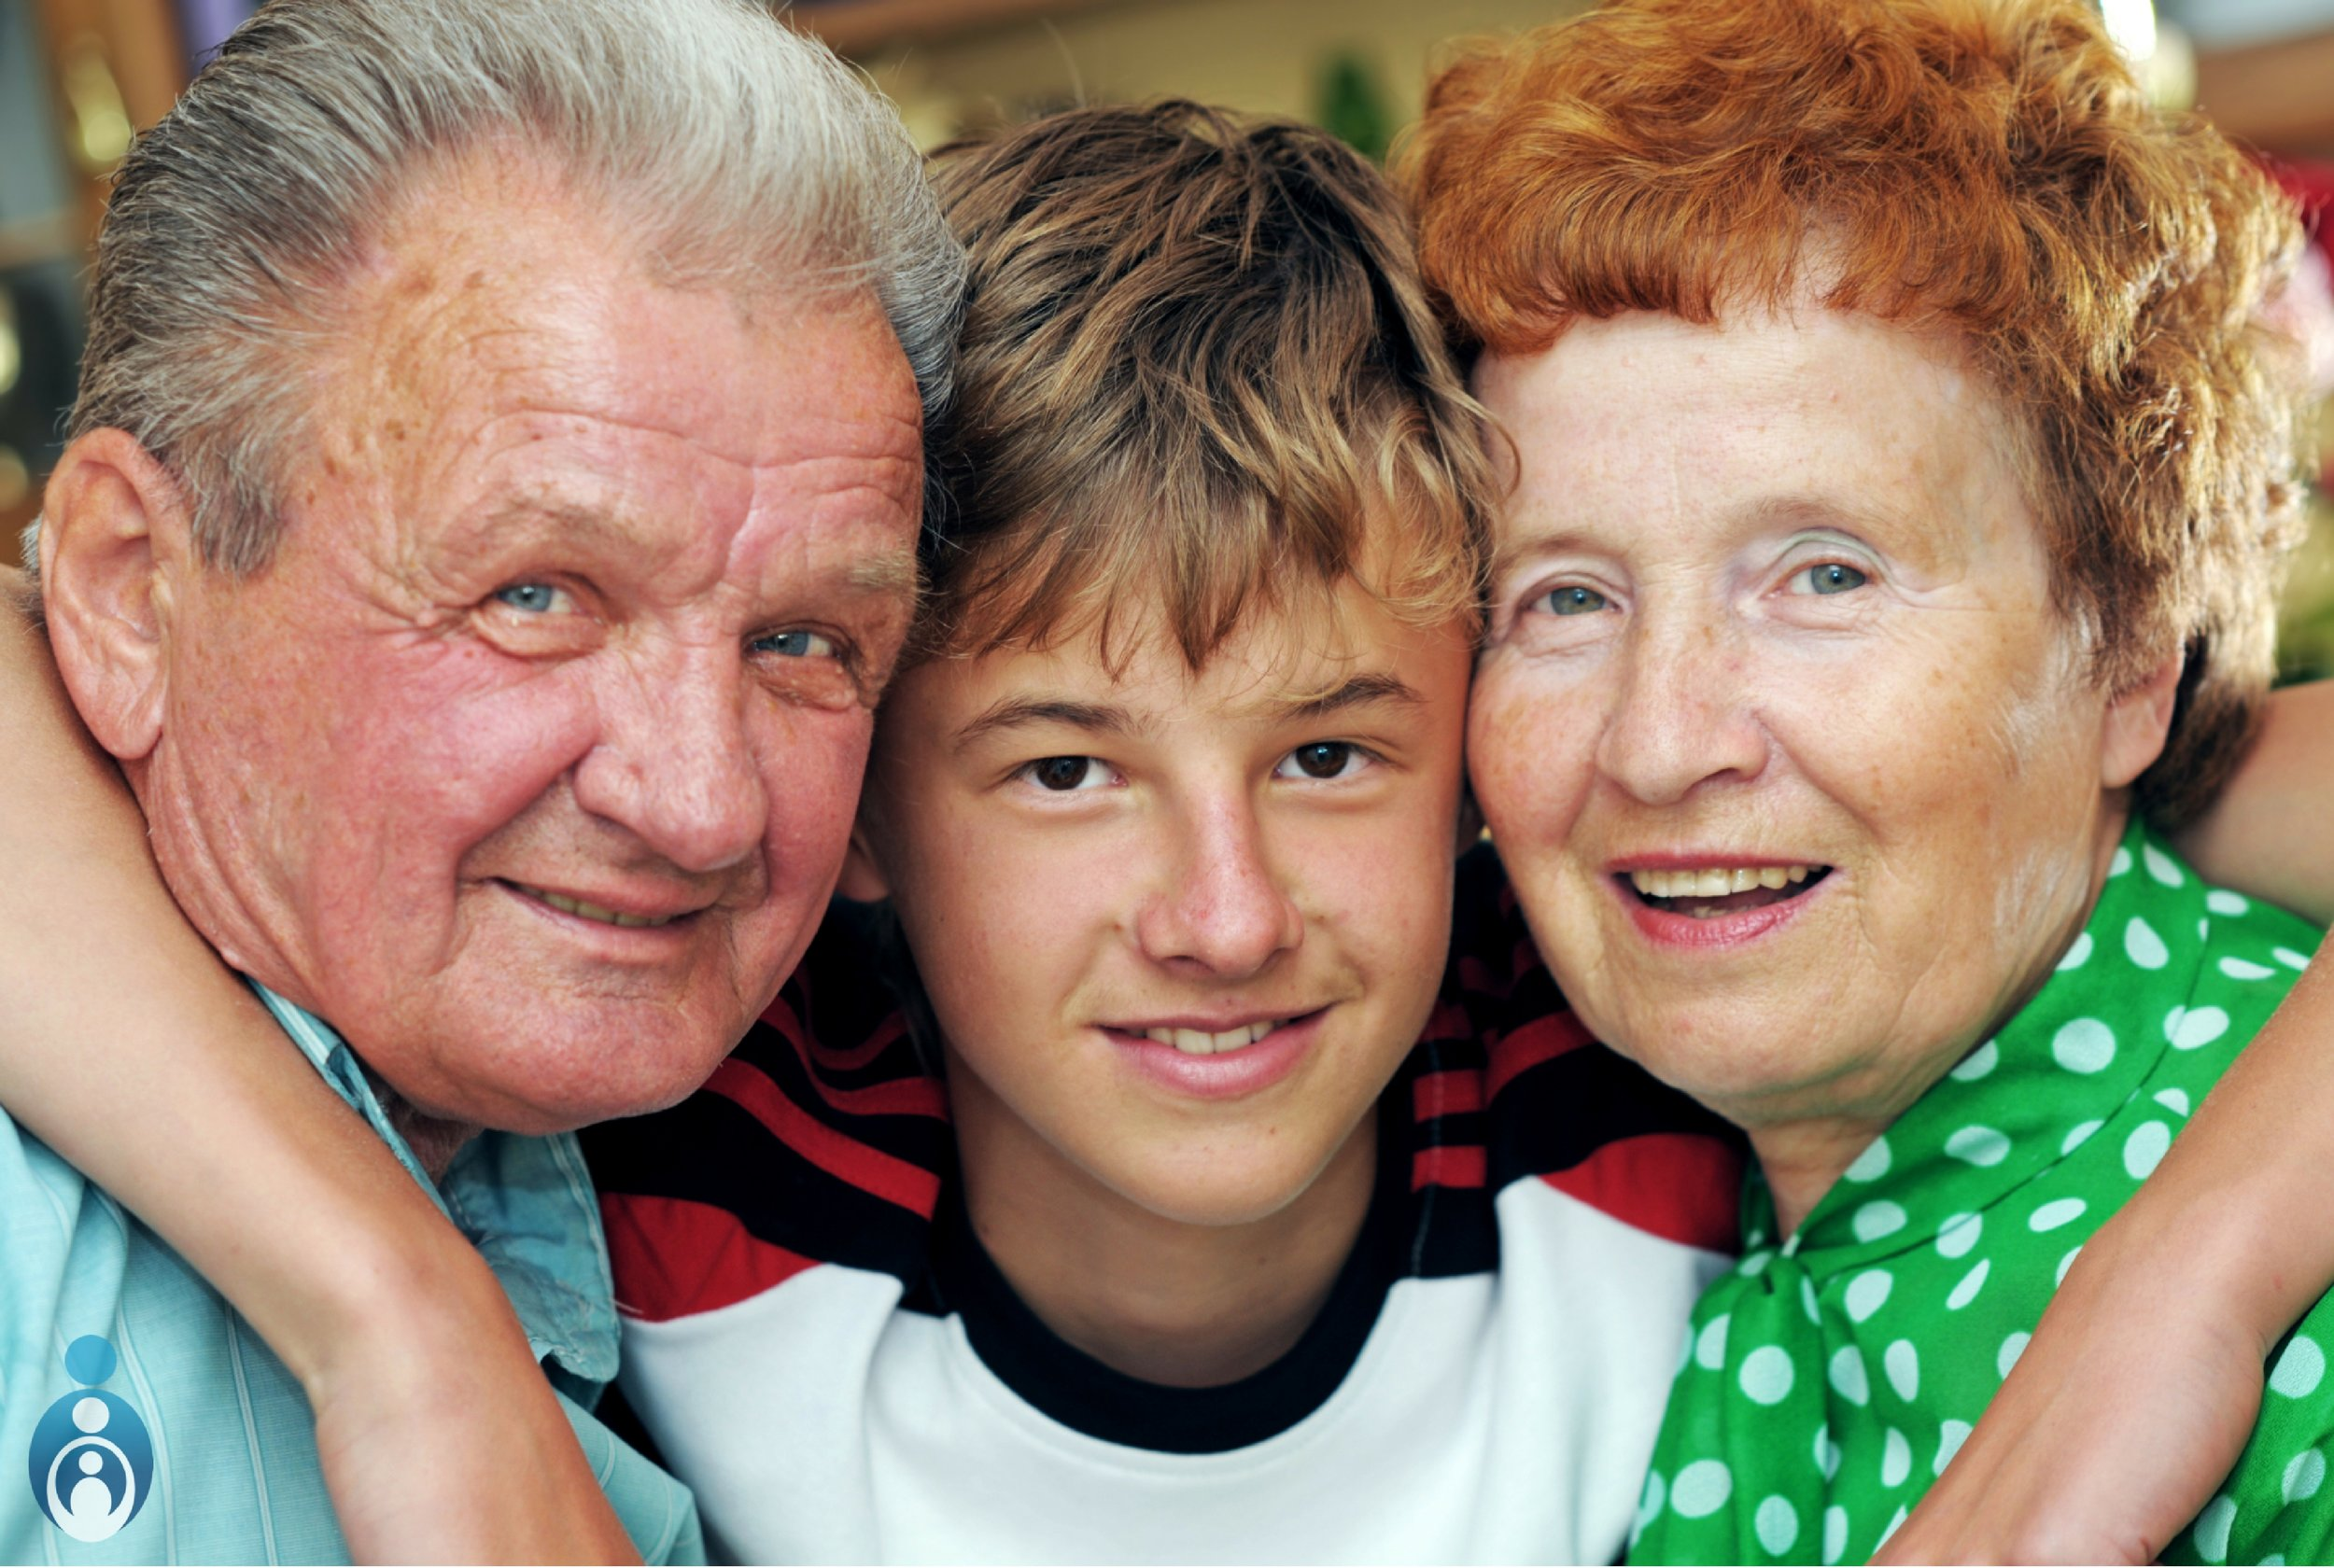 what-is-a-grandparent-podcast-americas-family-coaches-gary-barb-rosberg